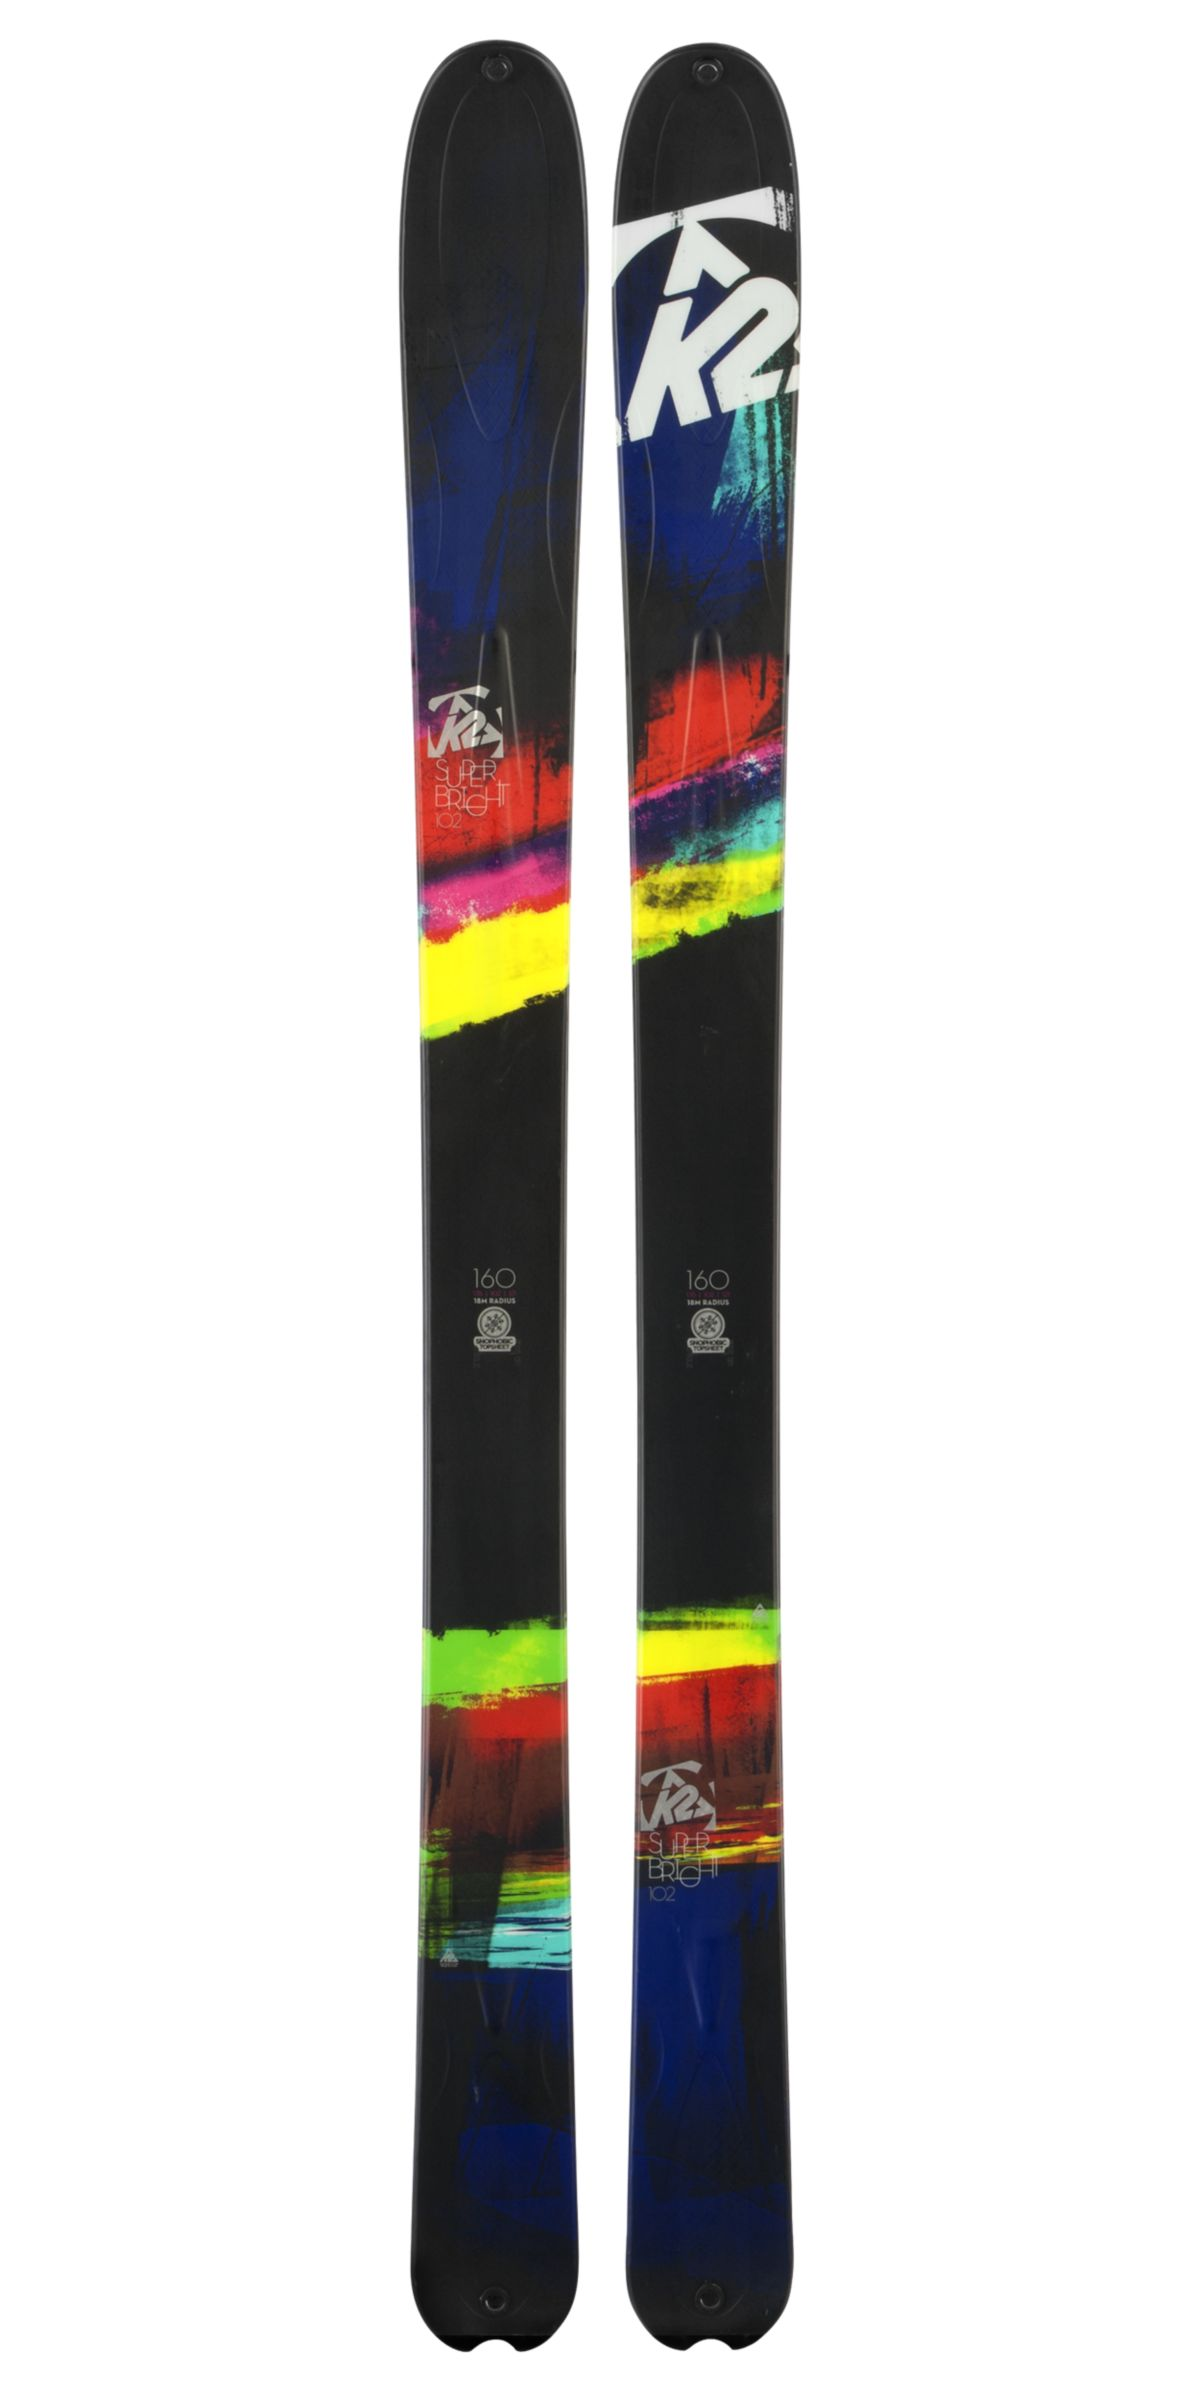 K2 Ski 2014 K2 Skis - Available In-store Now! - Aussieskier.com